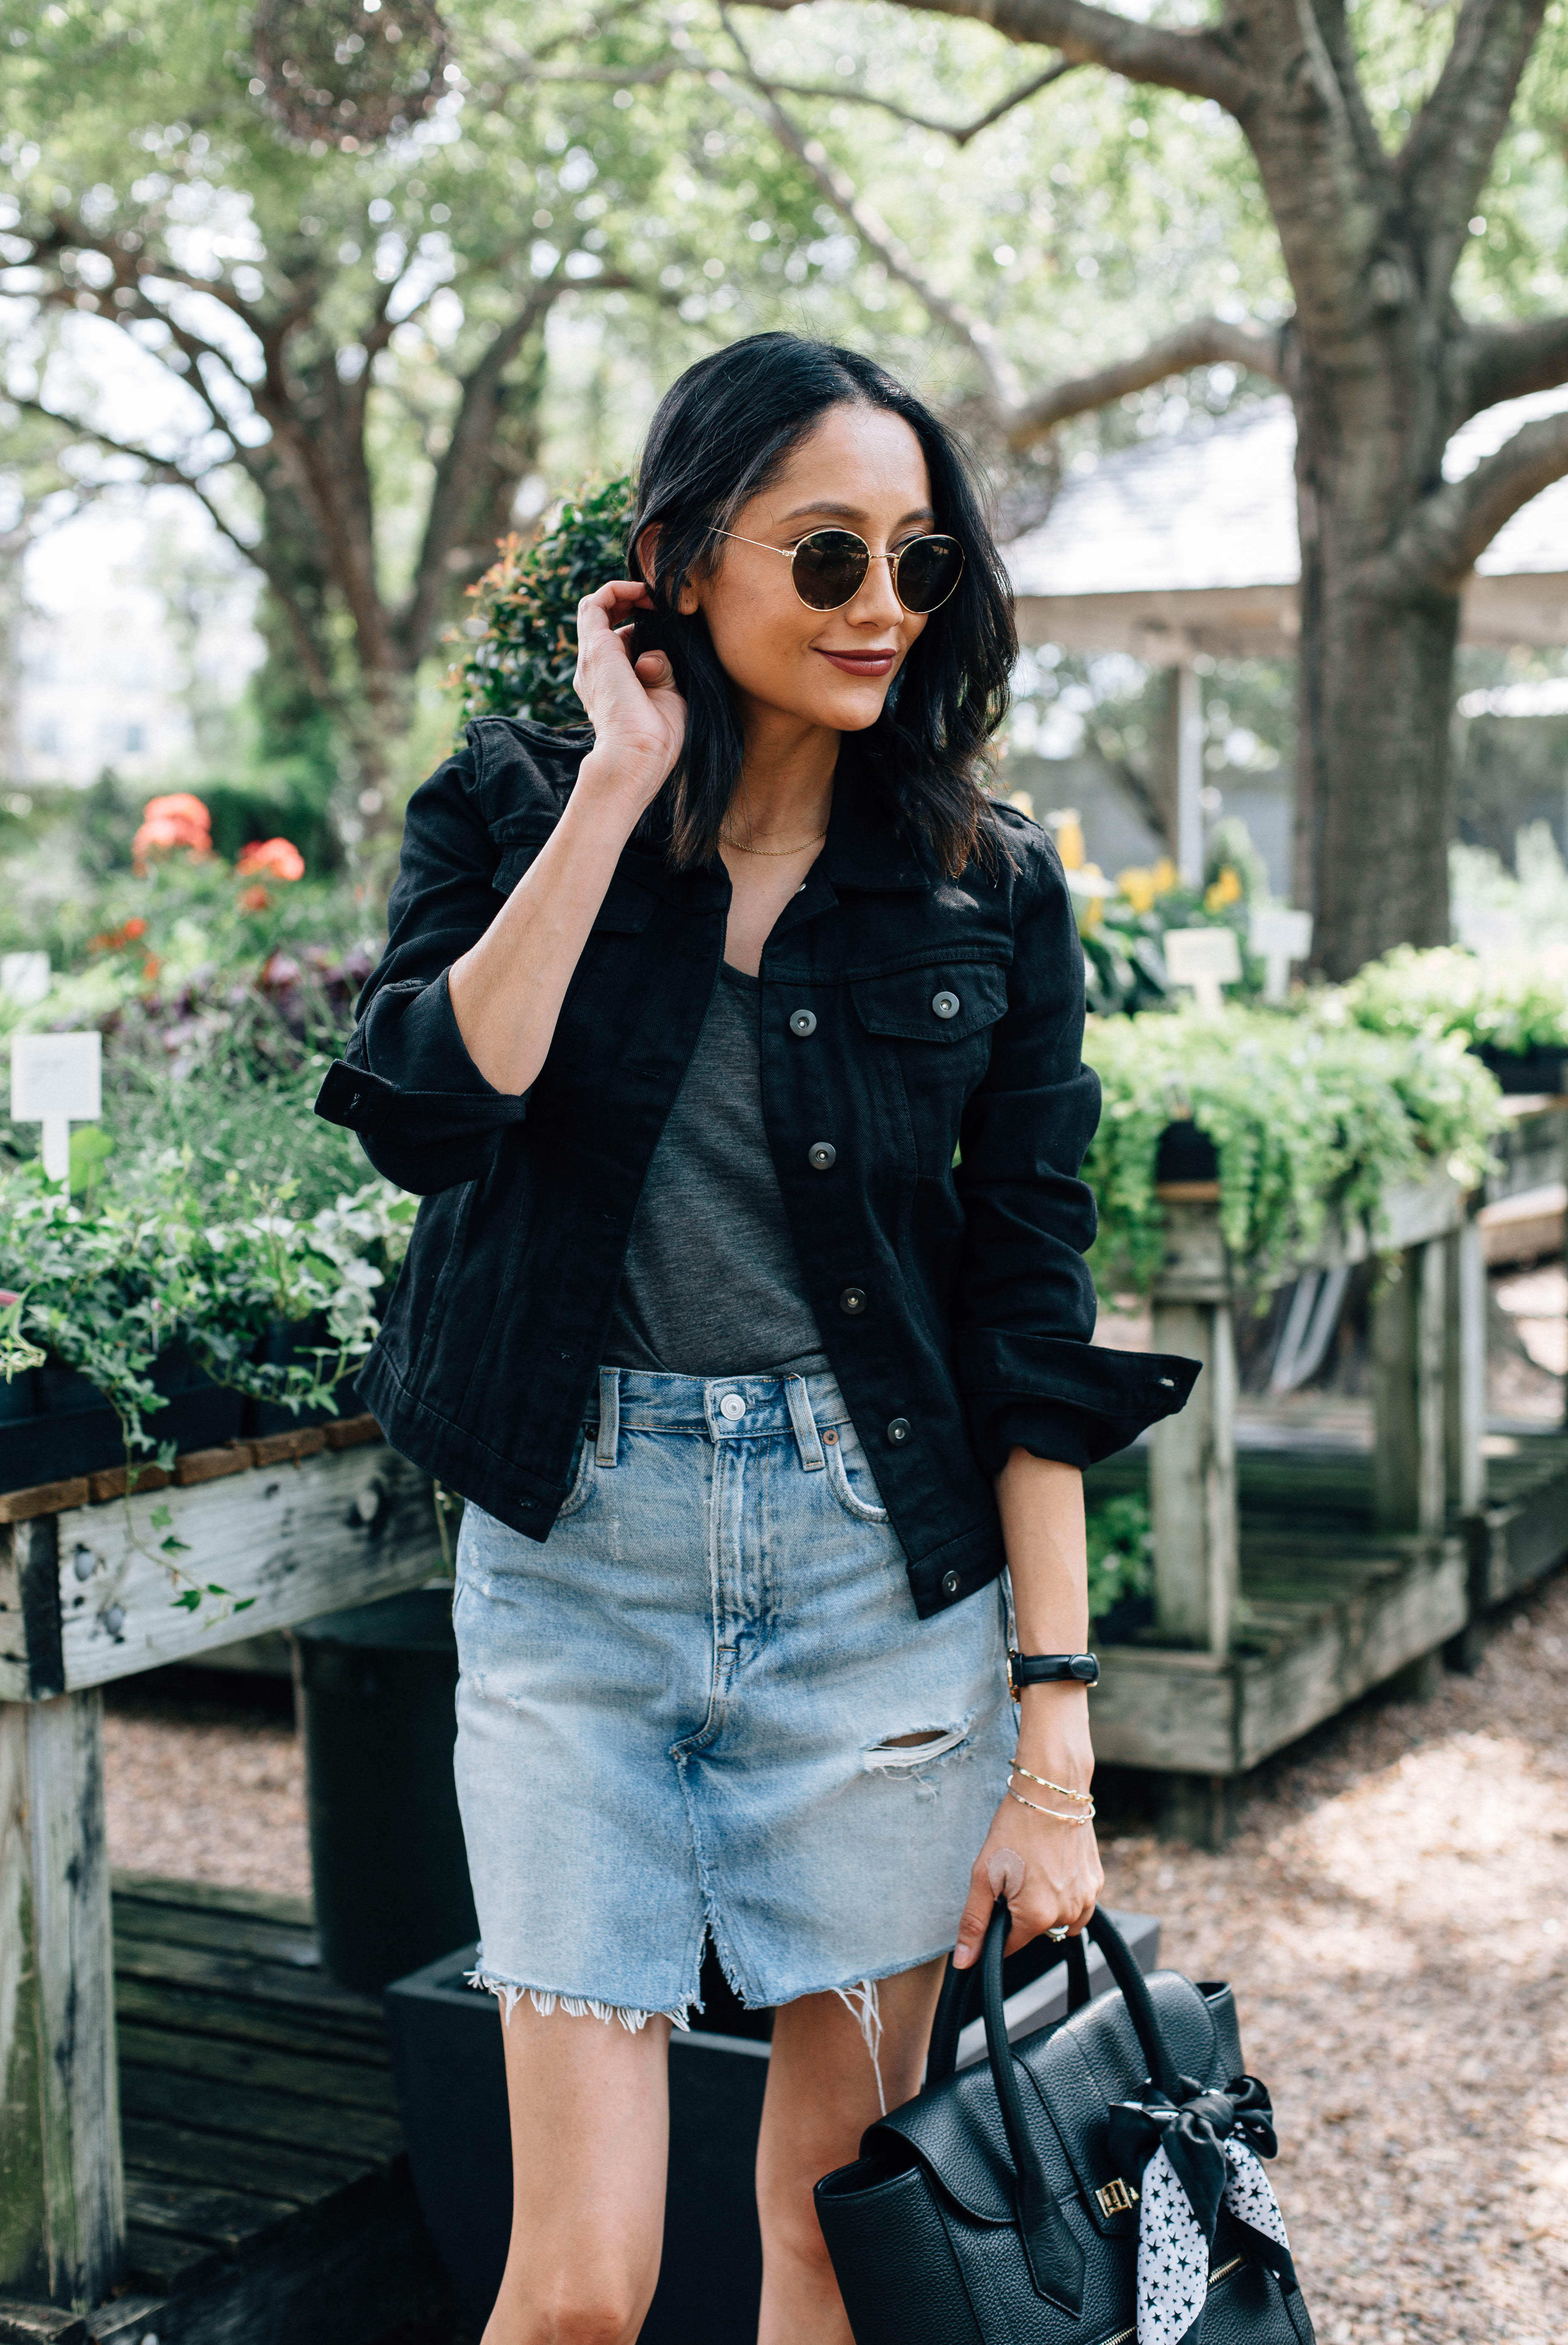 Lifestyle blogger Lilly Beltran of Daily Craving wearing a denim mini skirt and a black denim jacket